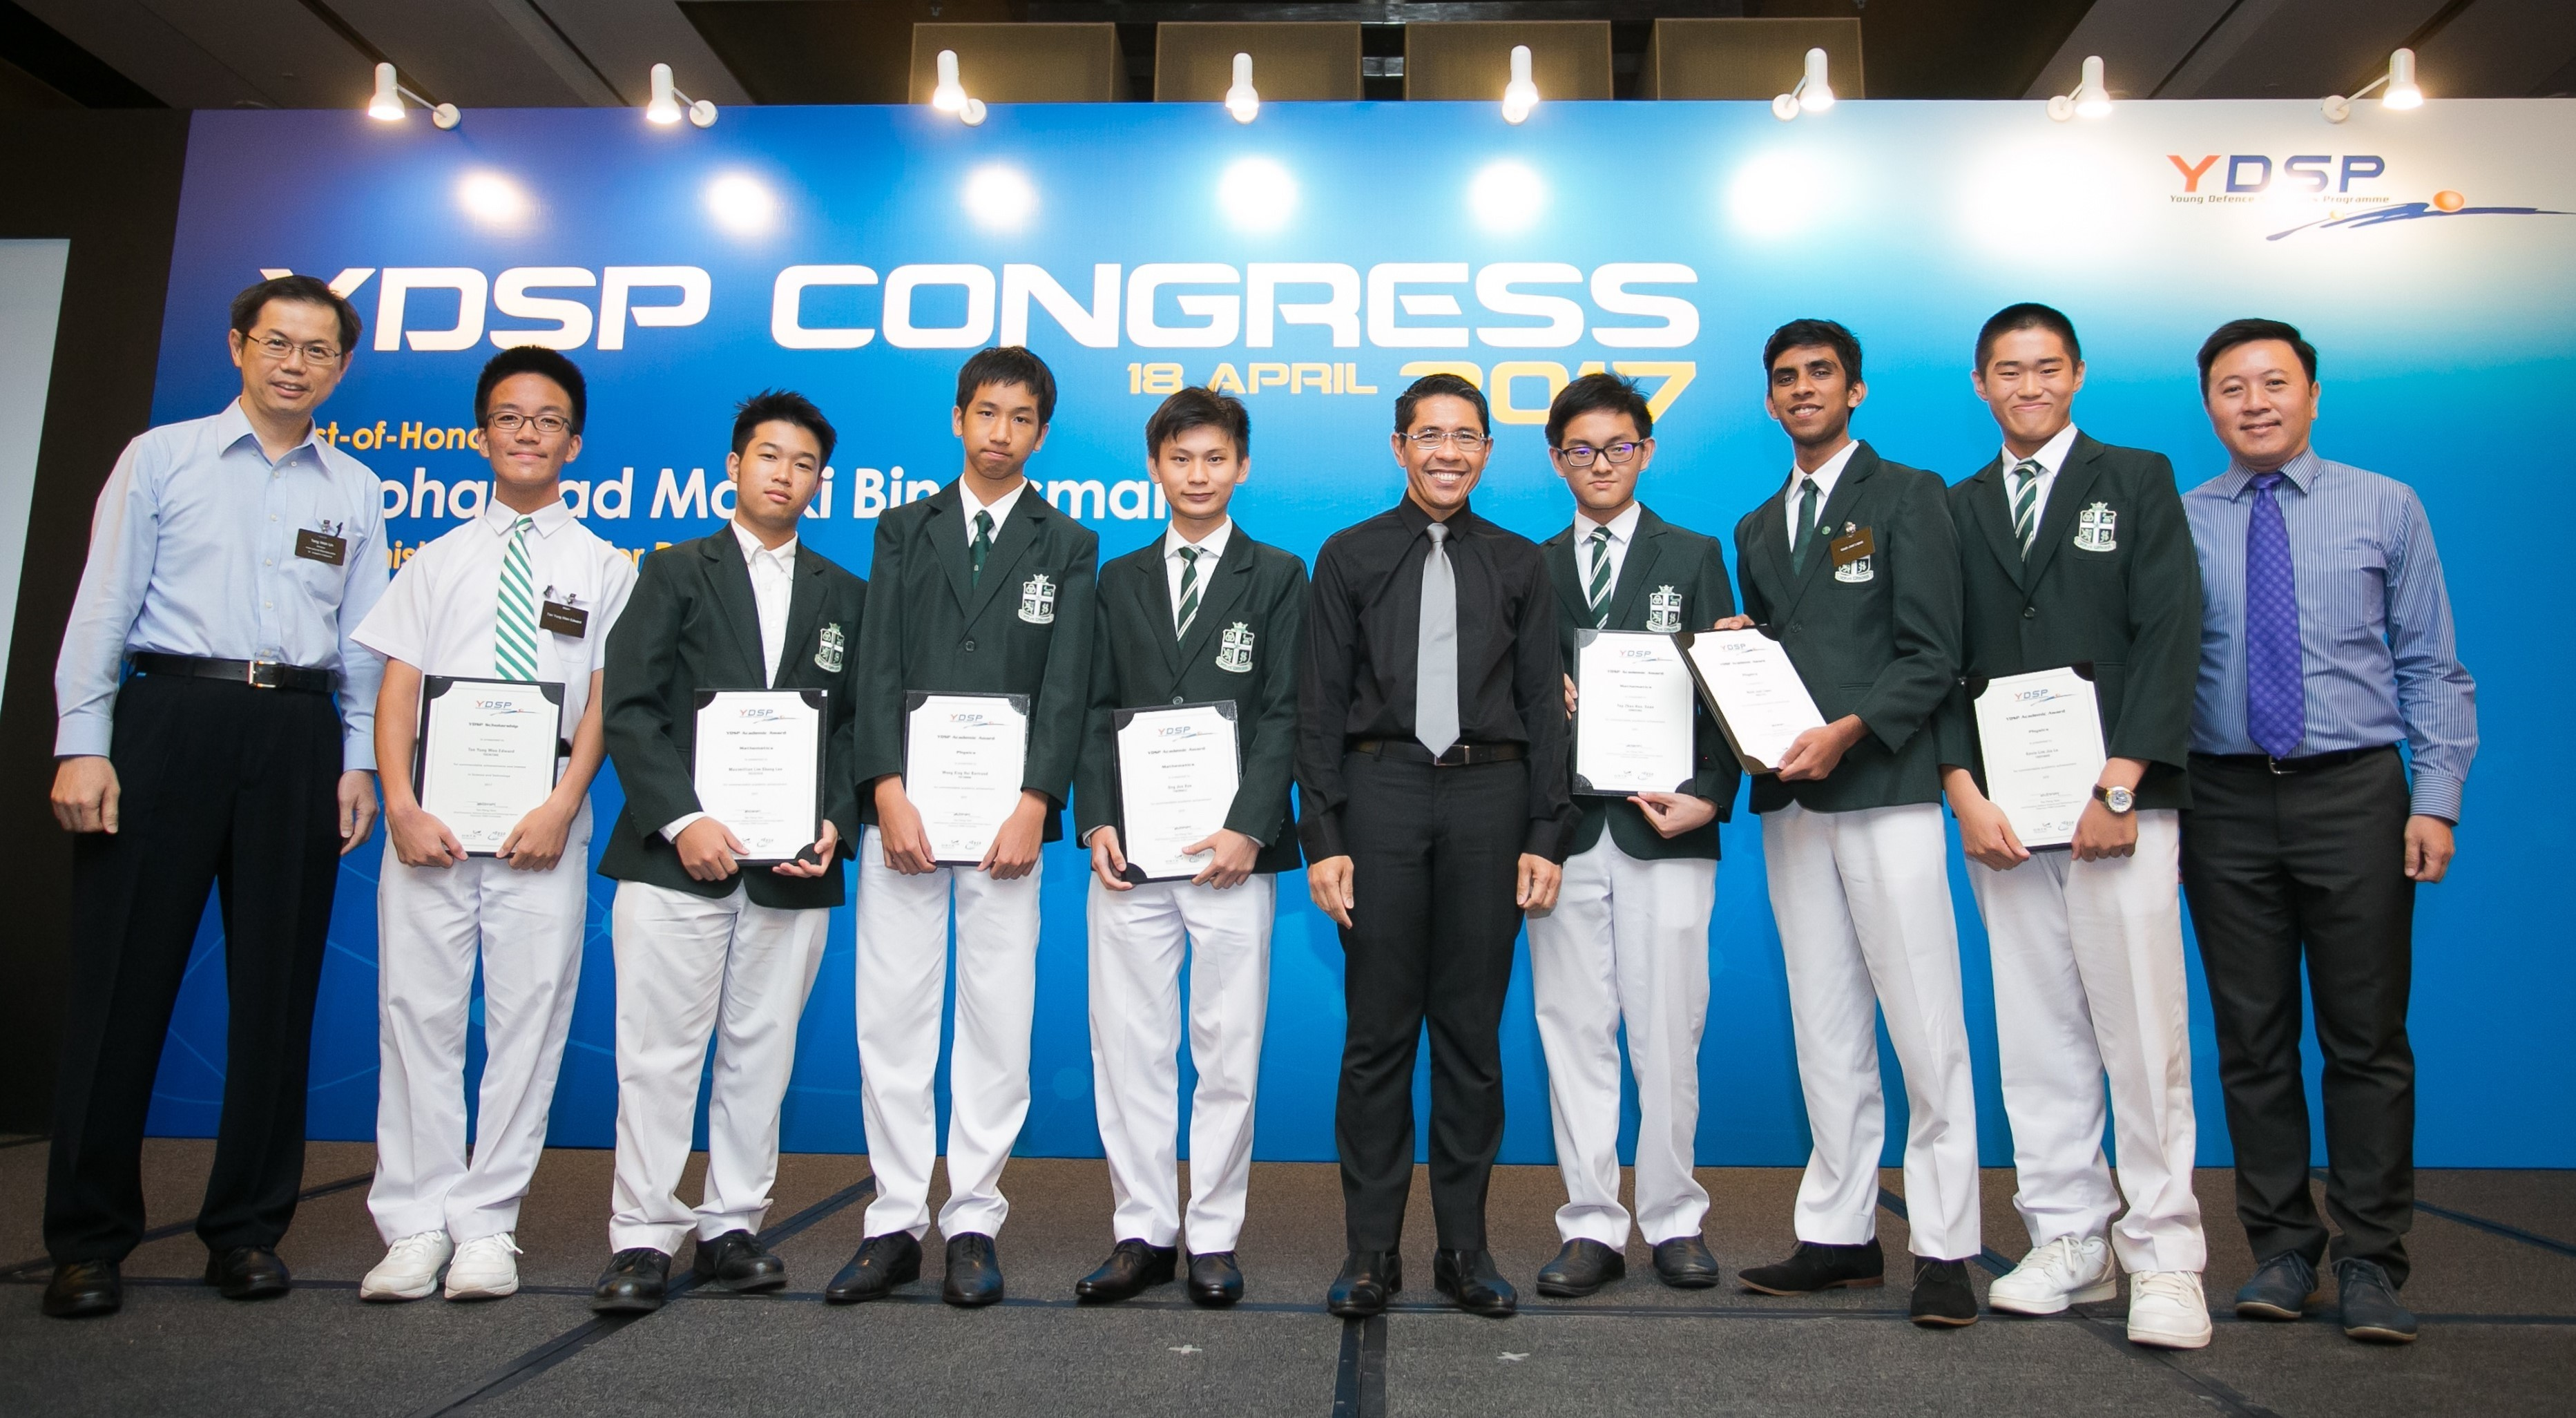 SJI YDSP_Congress_2017_Group Photo.jpg